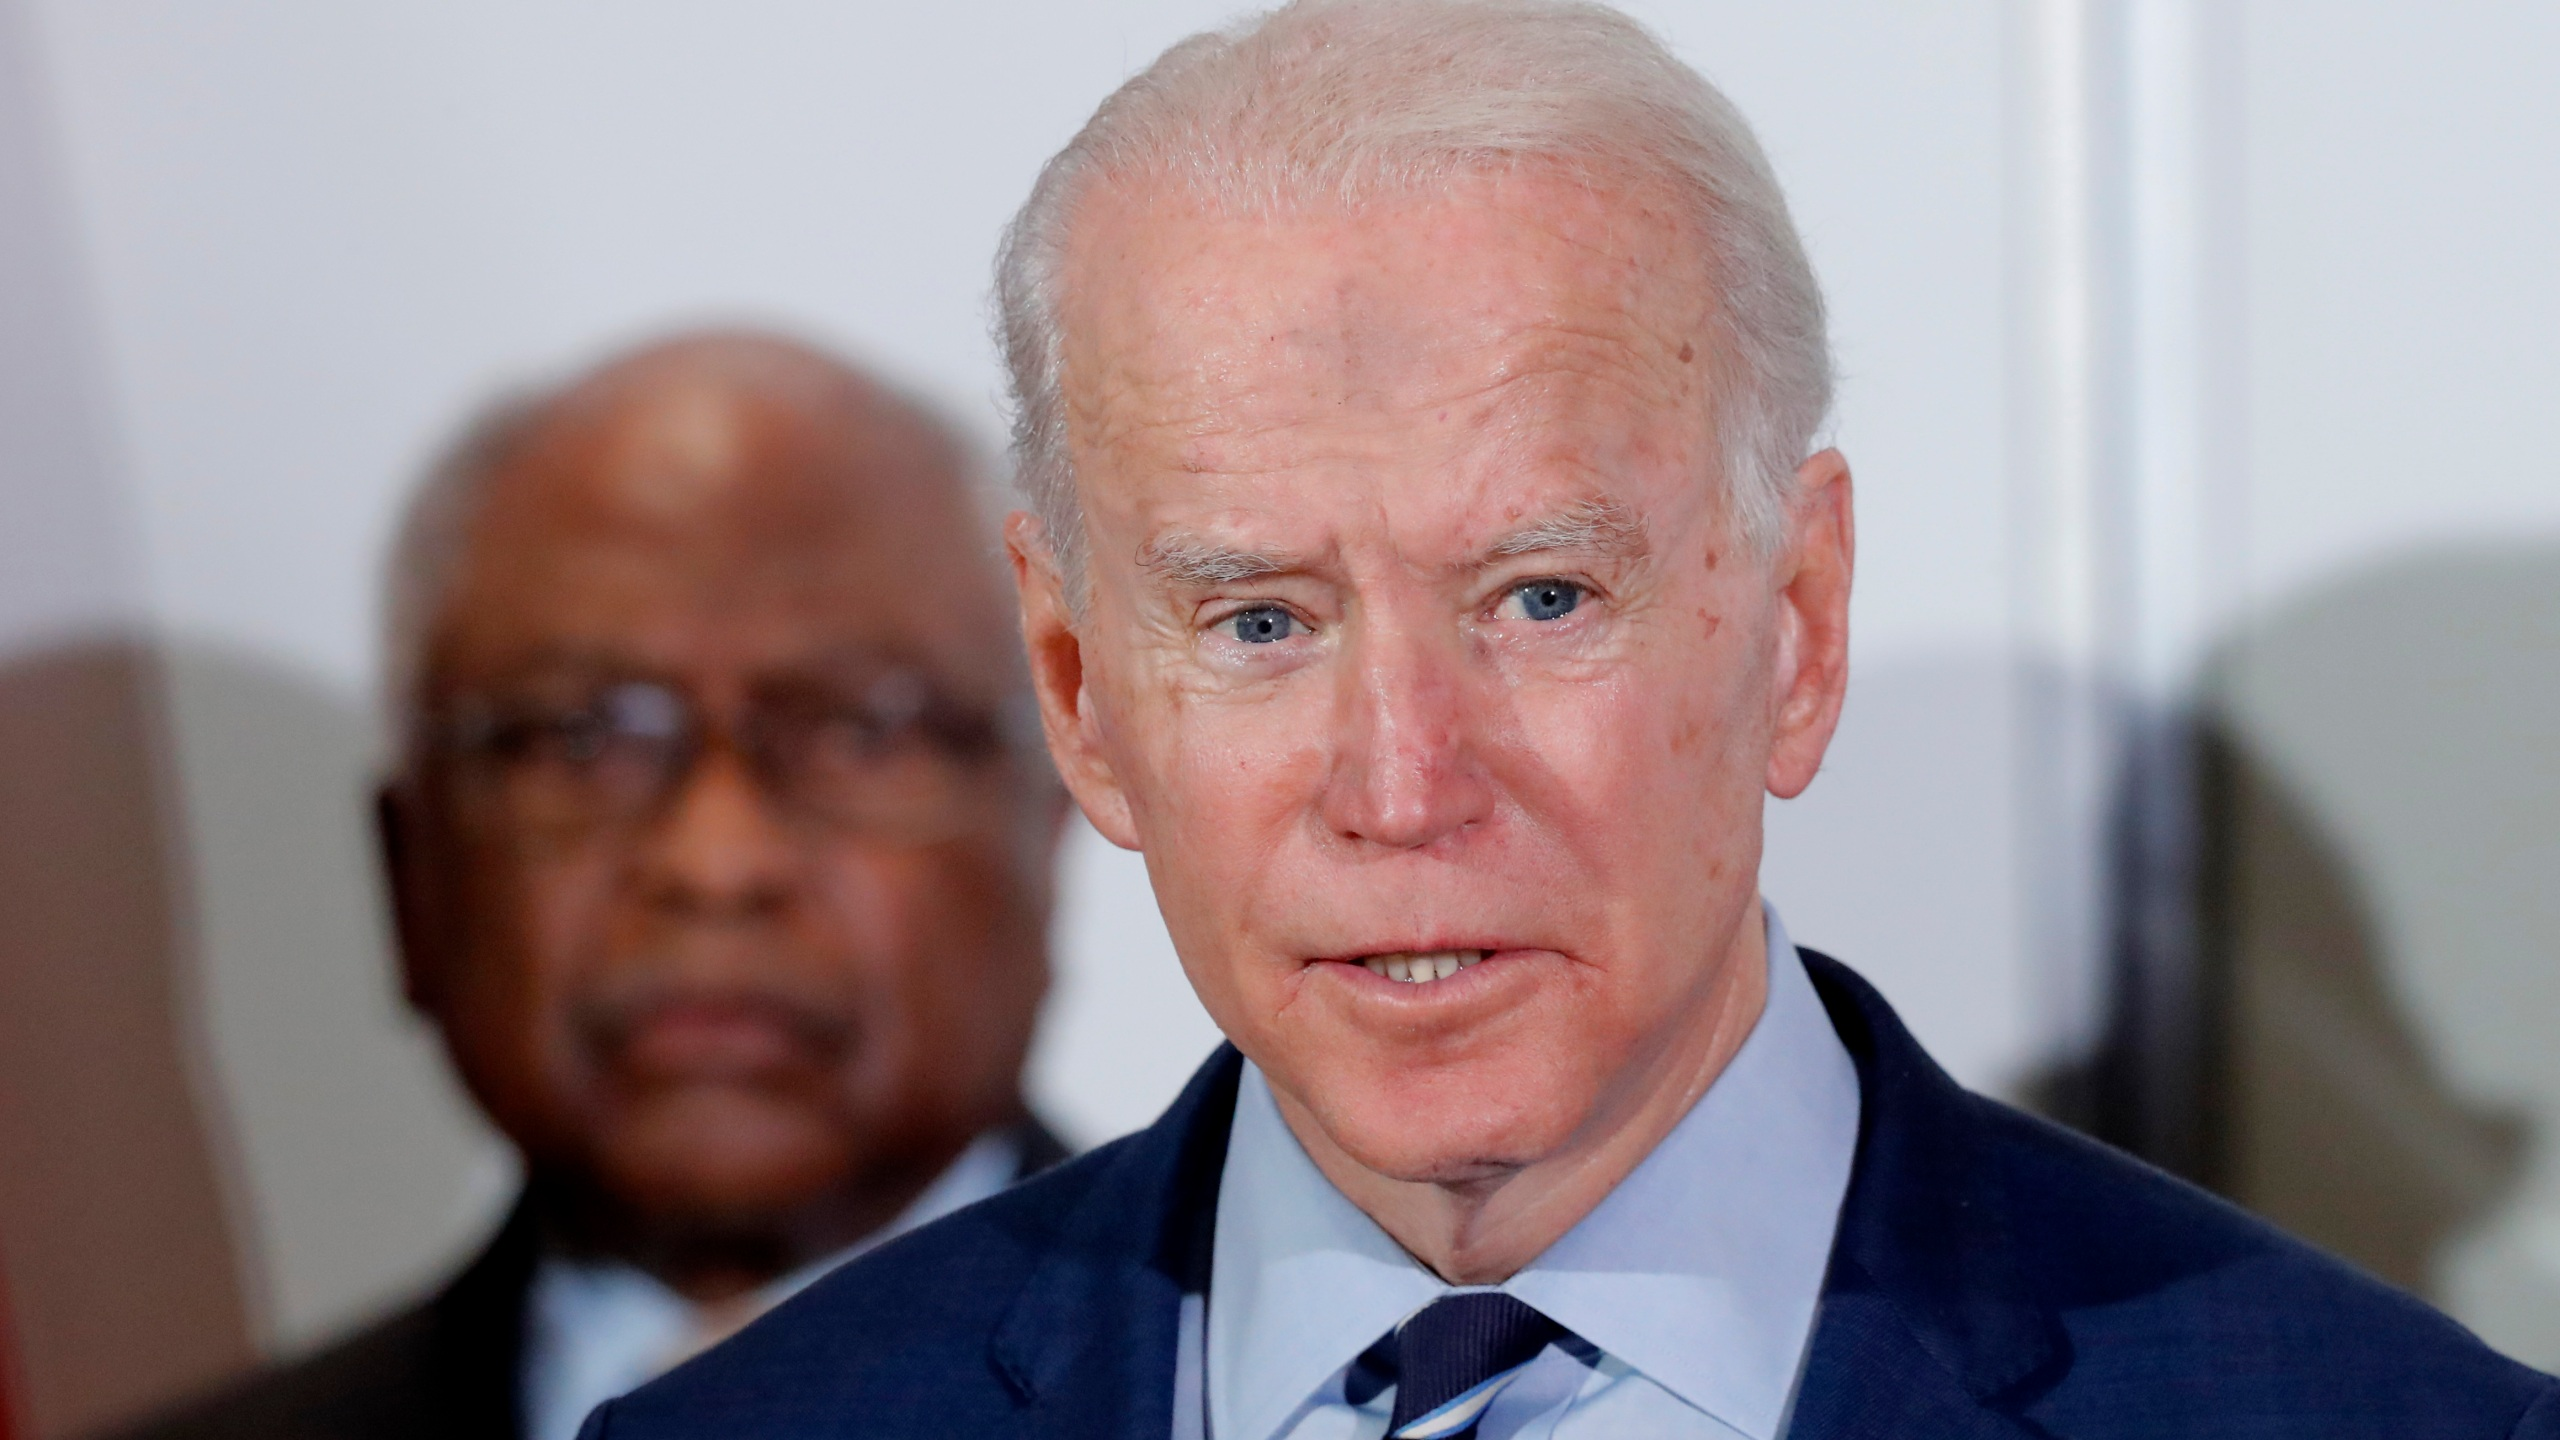 Joe Biden, Jim Clyburn